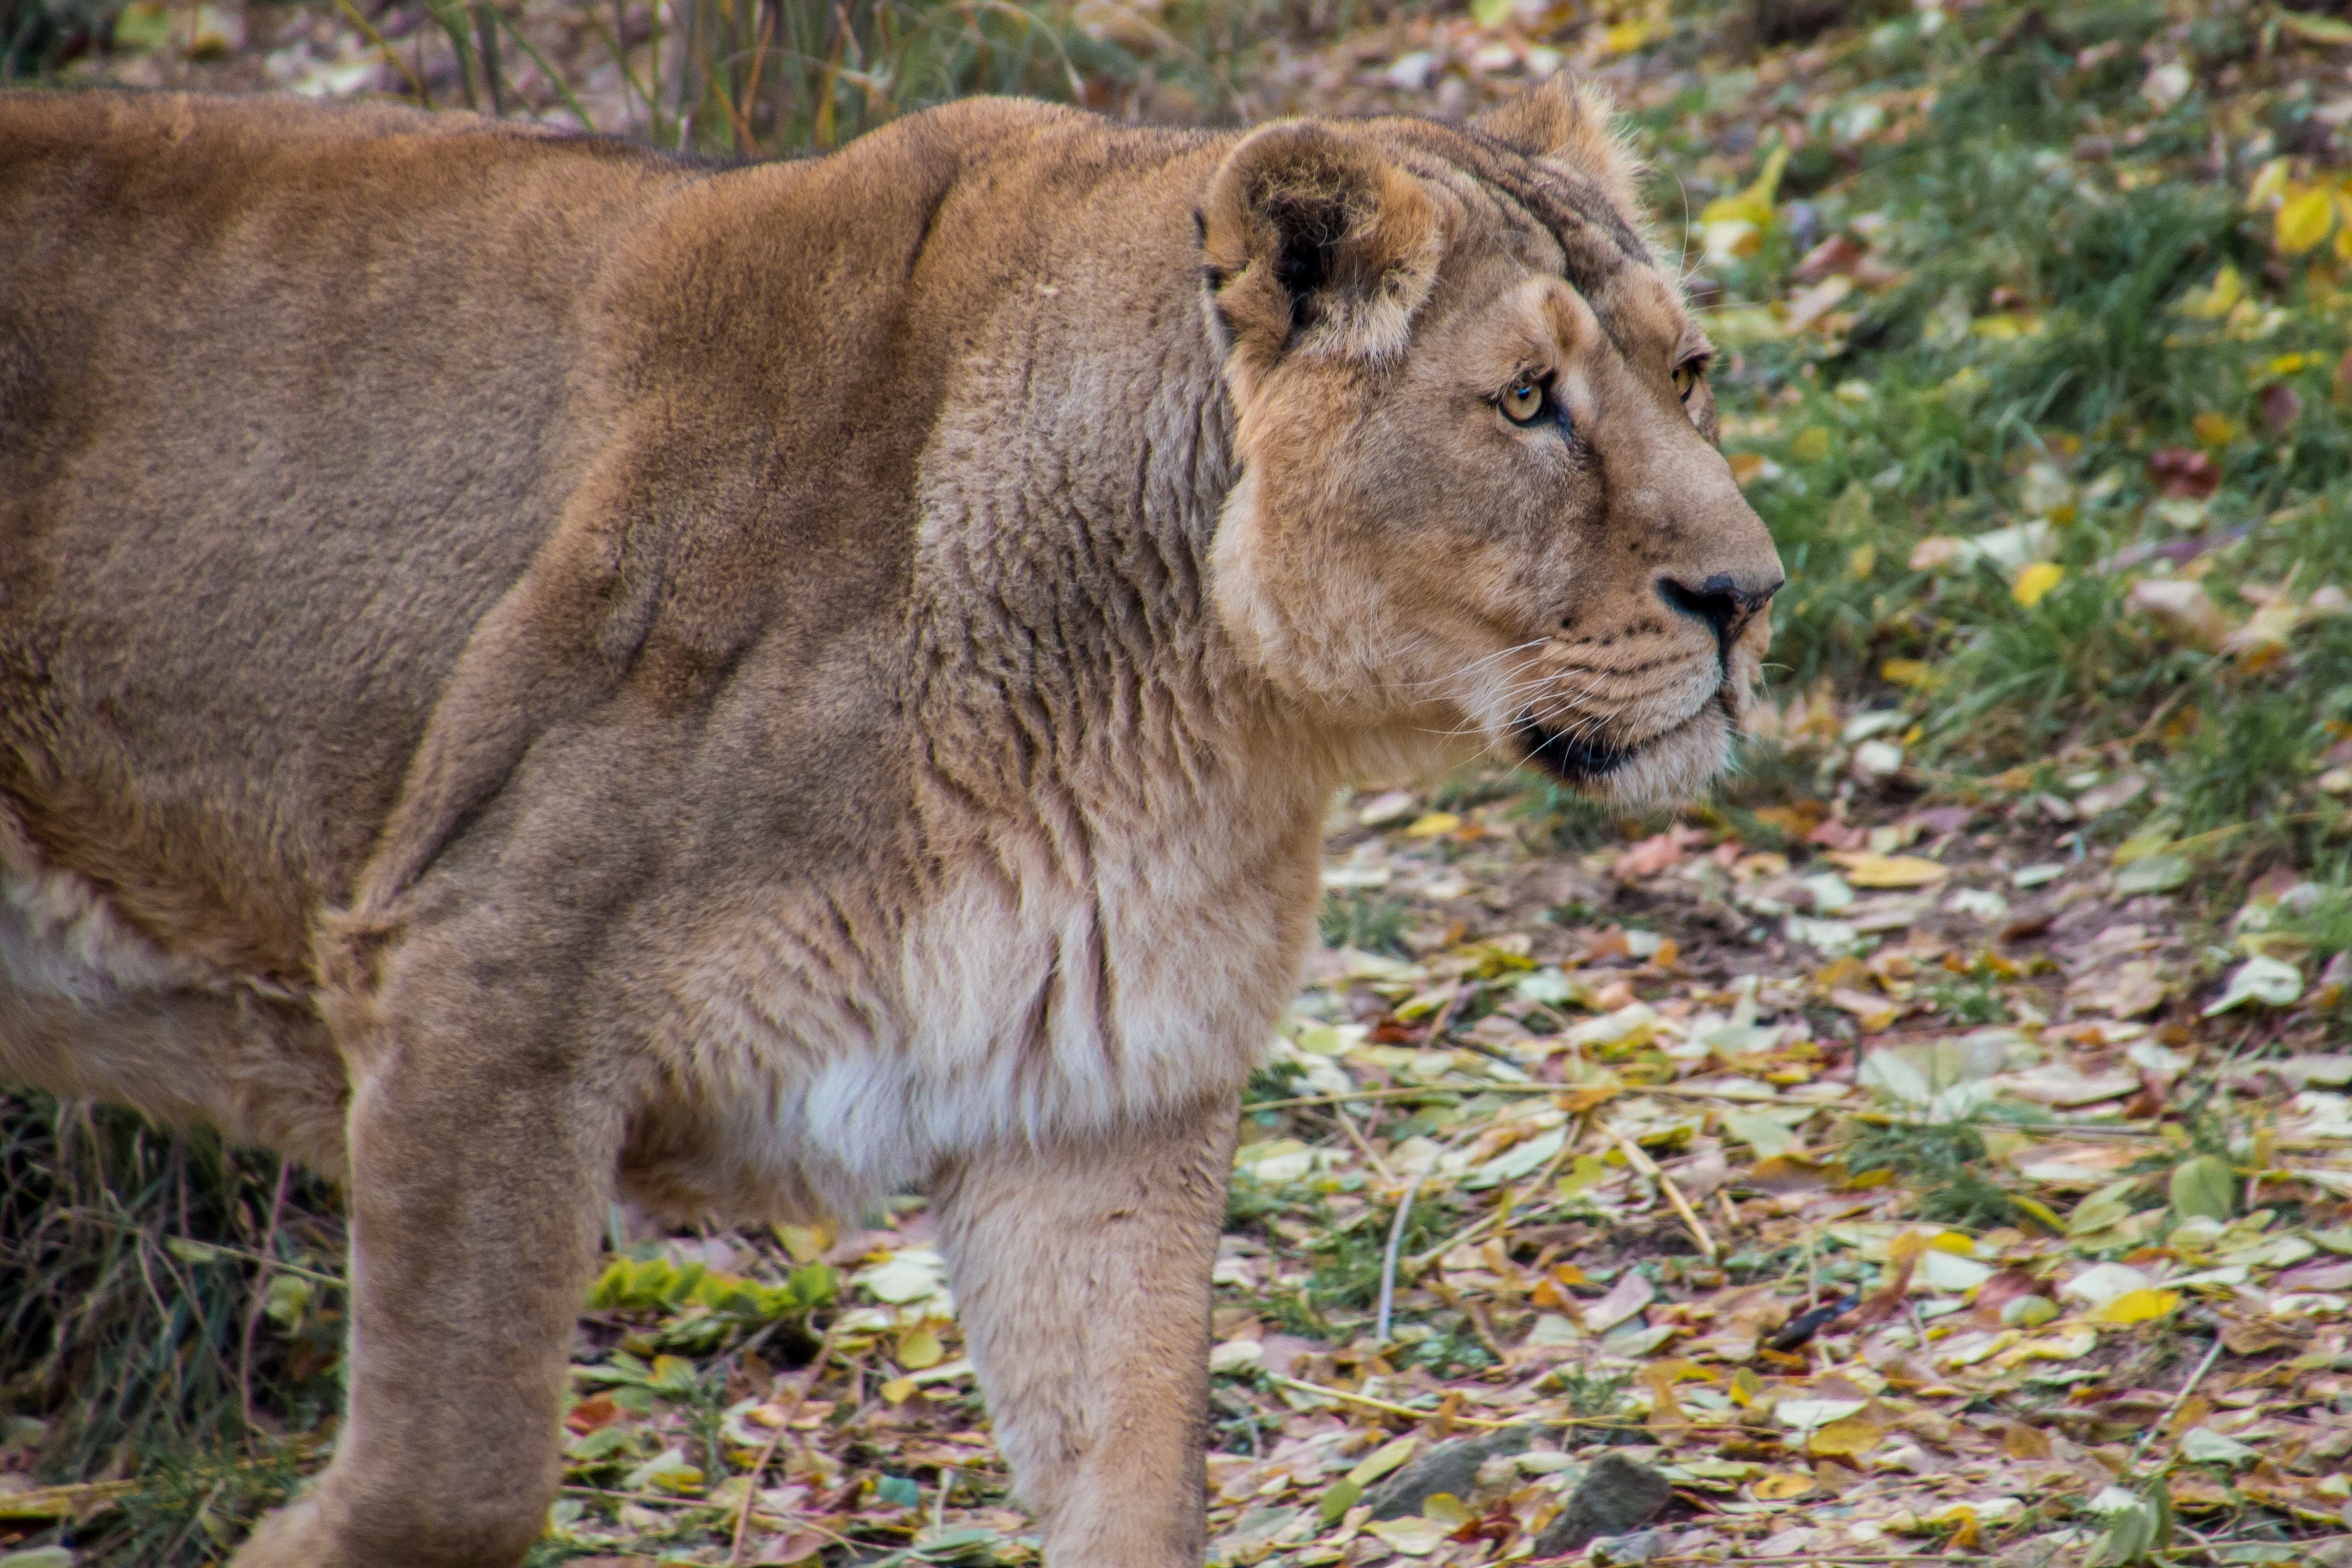 82029 download wallpaper Animals, Lioness, Lion, Predator, Big Cat, Young screensavers and pictures for free